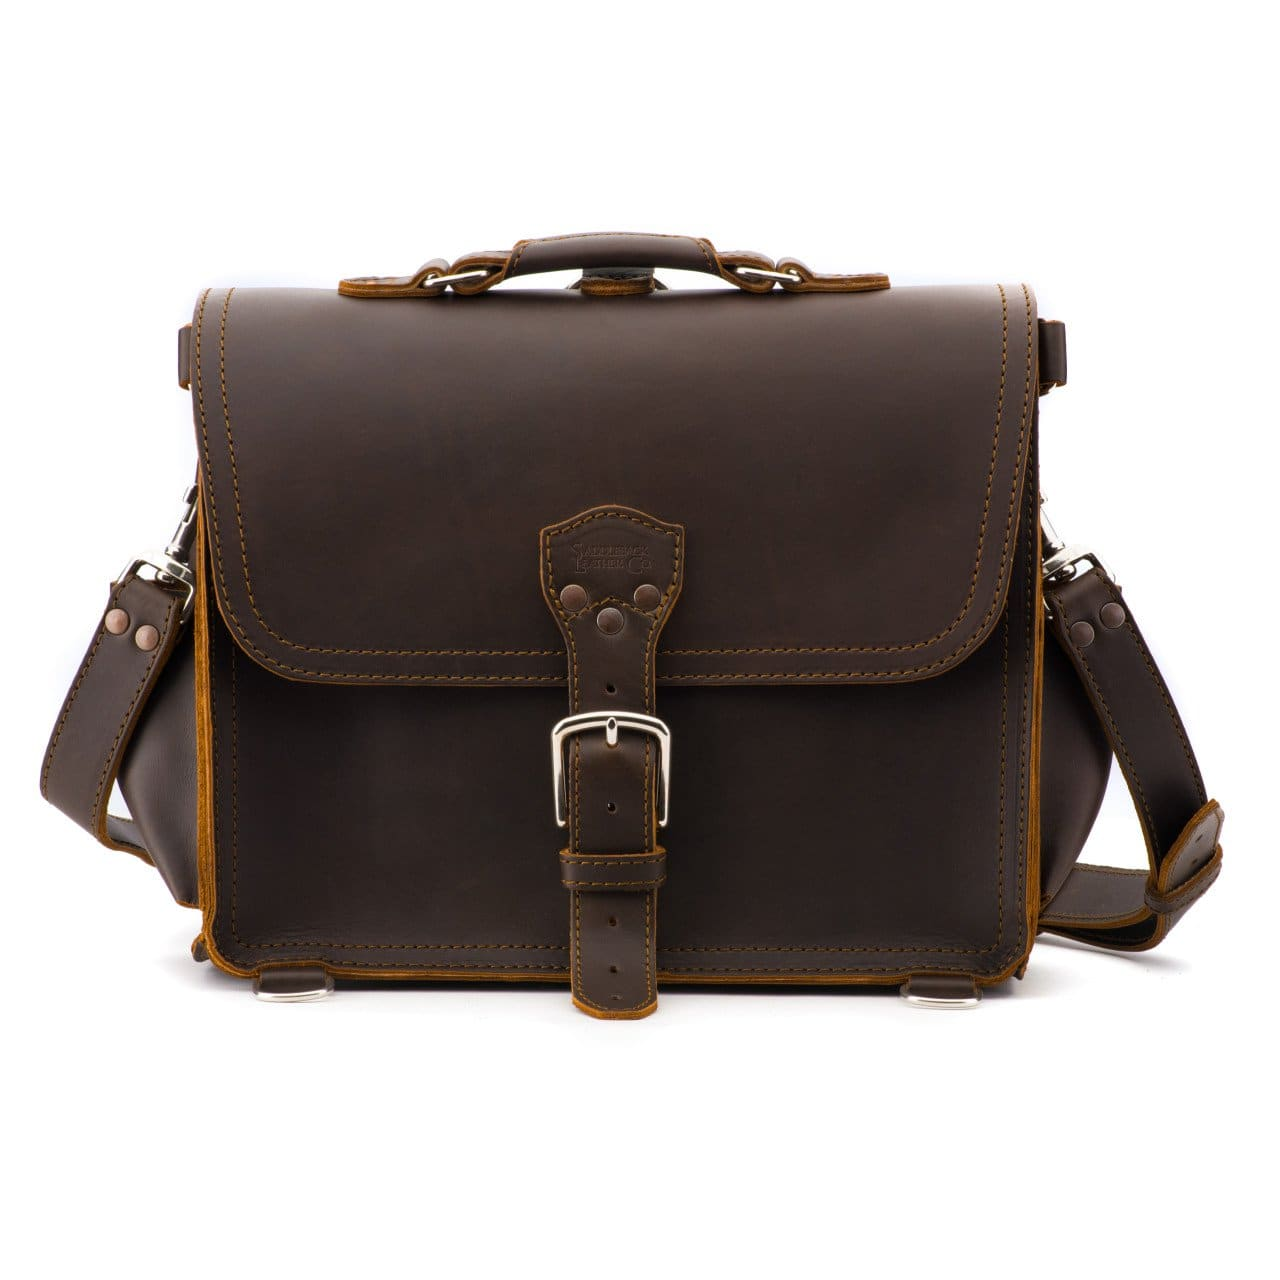 Saddleback Leather store wide sale 11% off backpacks and briefcase $449